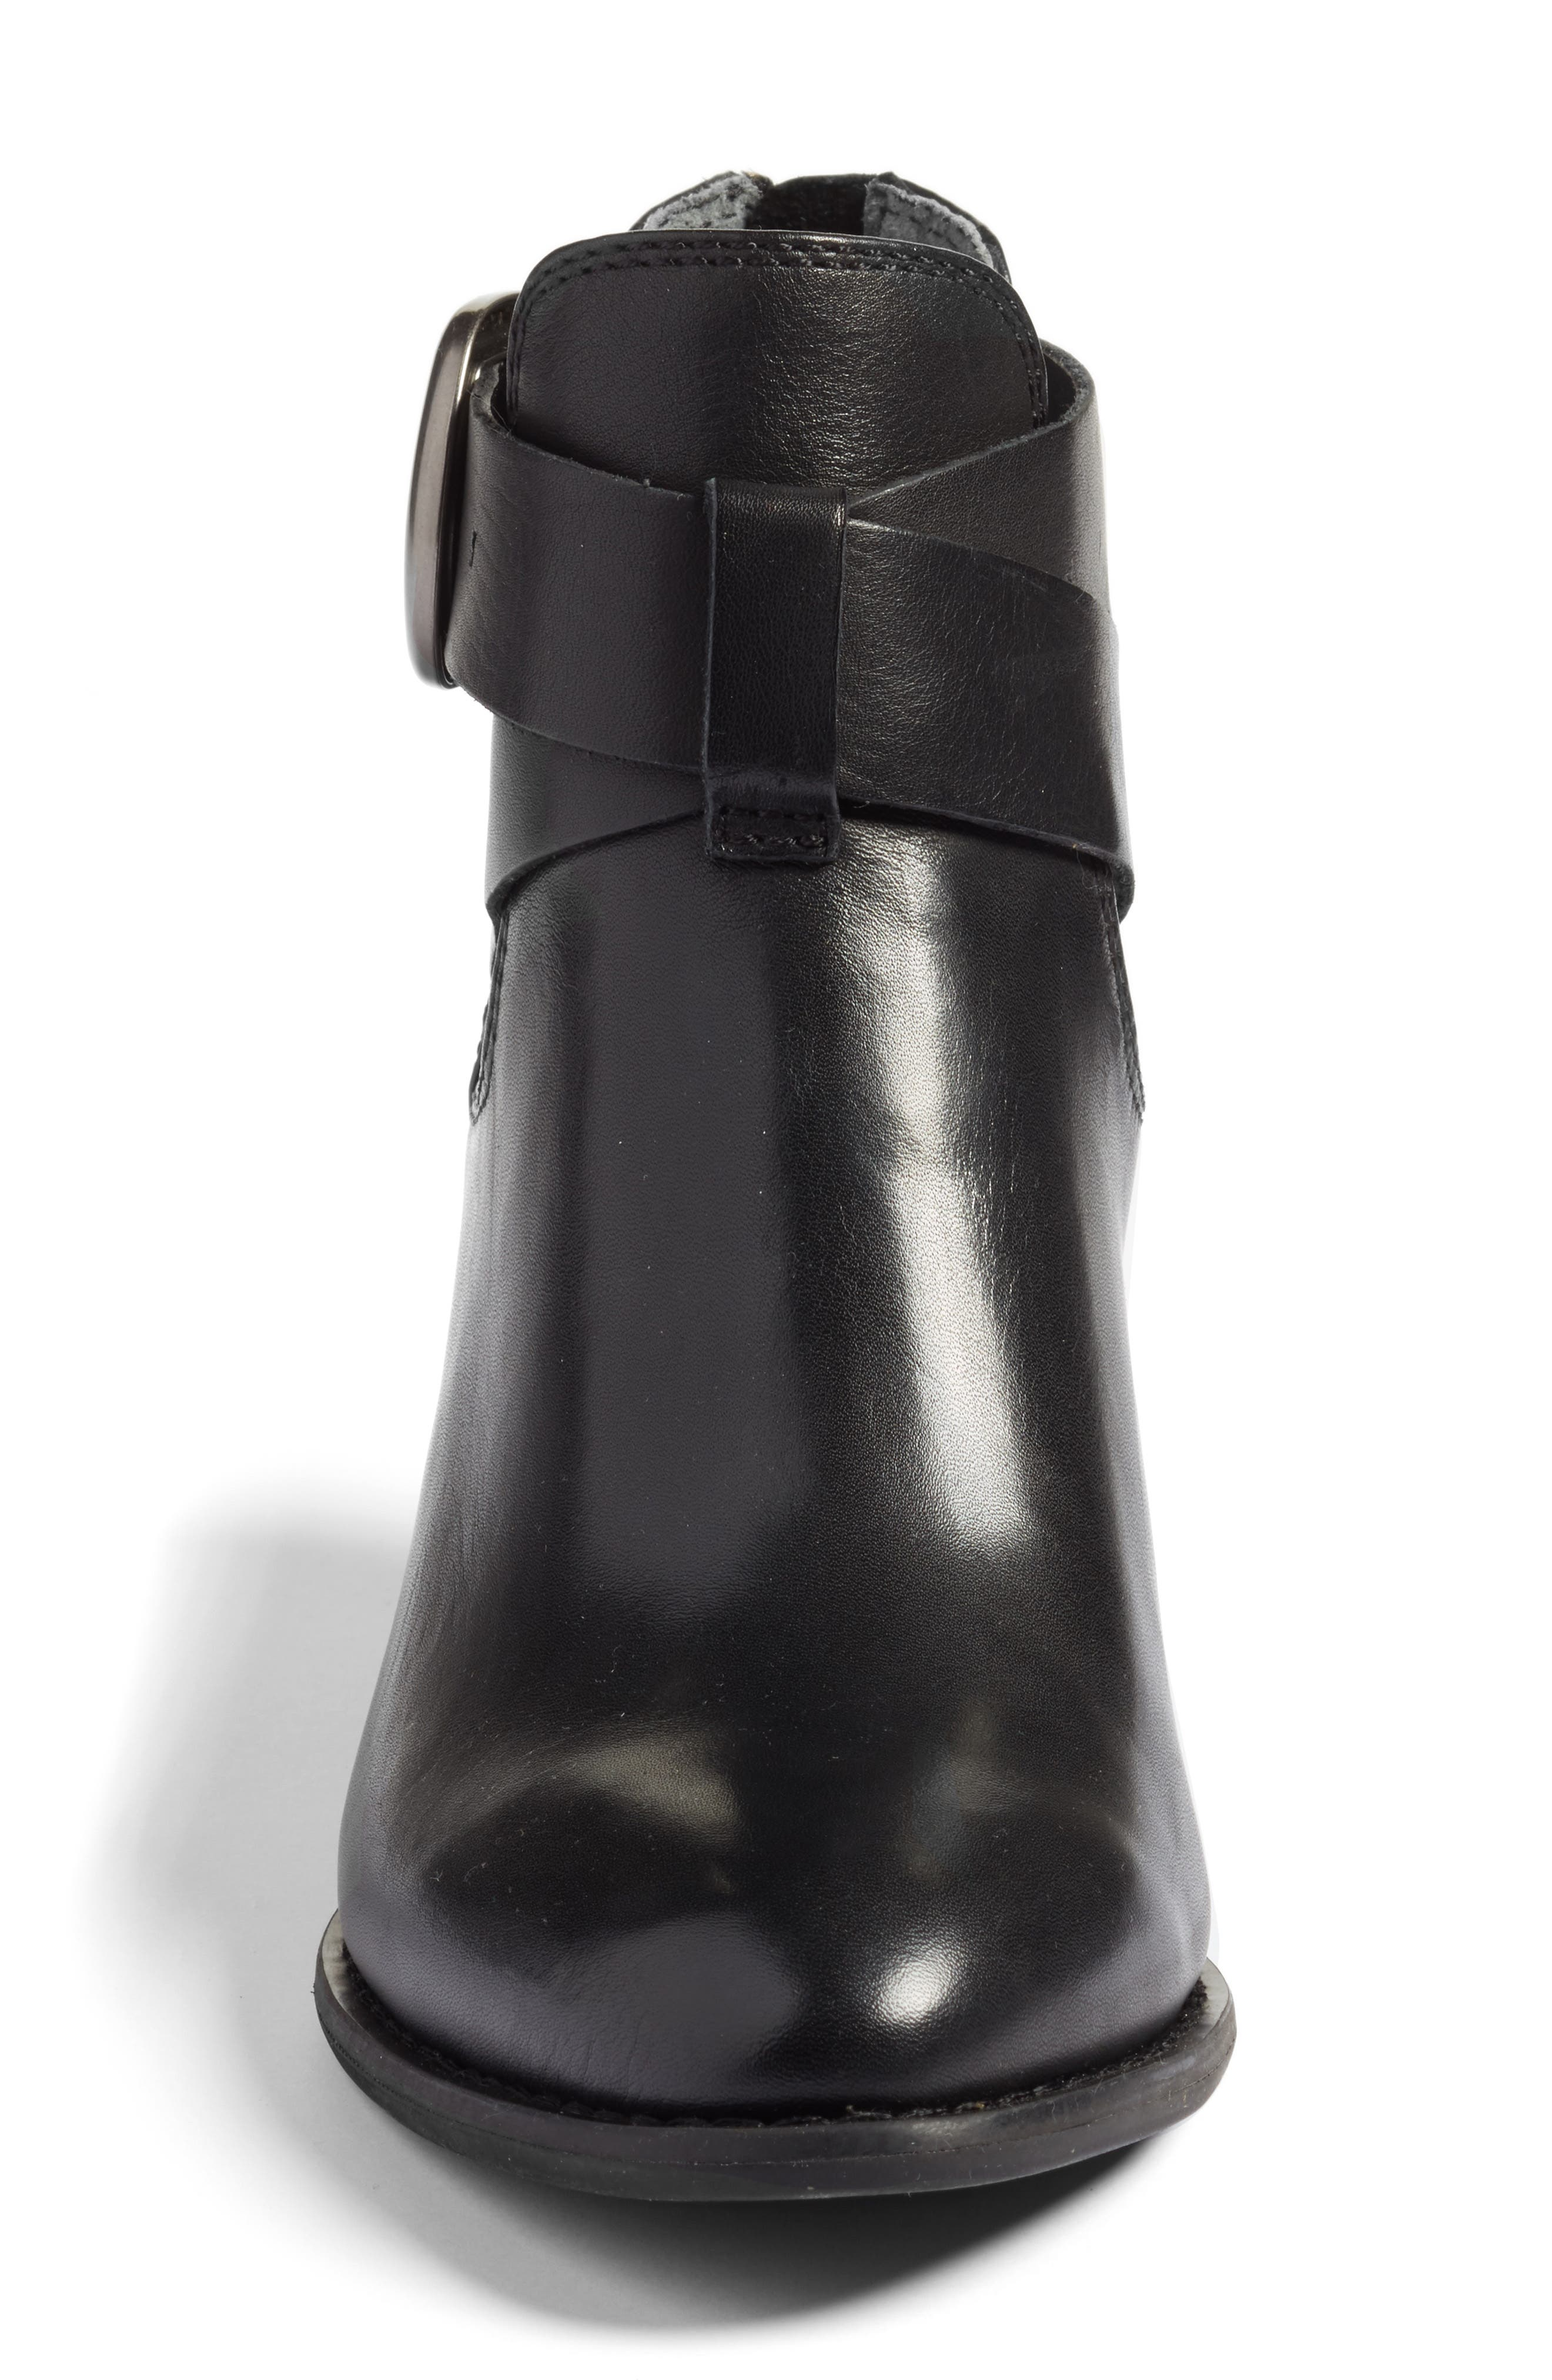 Rory Buckle Strap Bootie,                             Alternate thumbnail 4, color,                             001